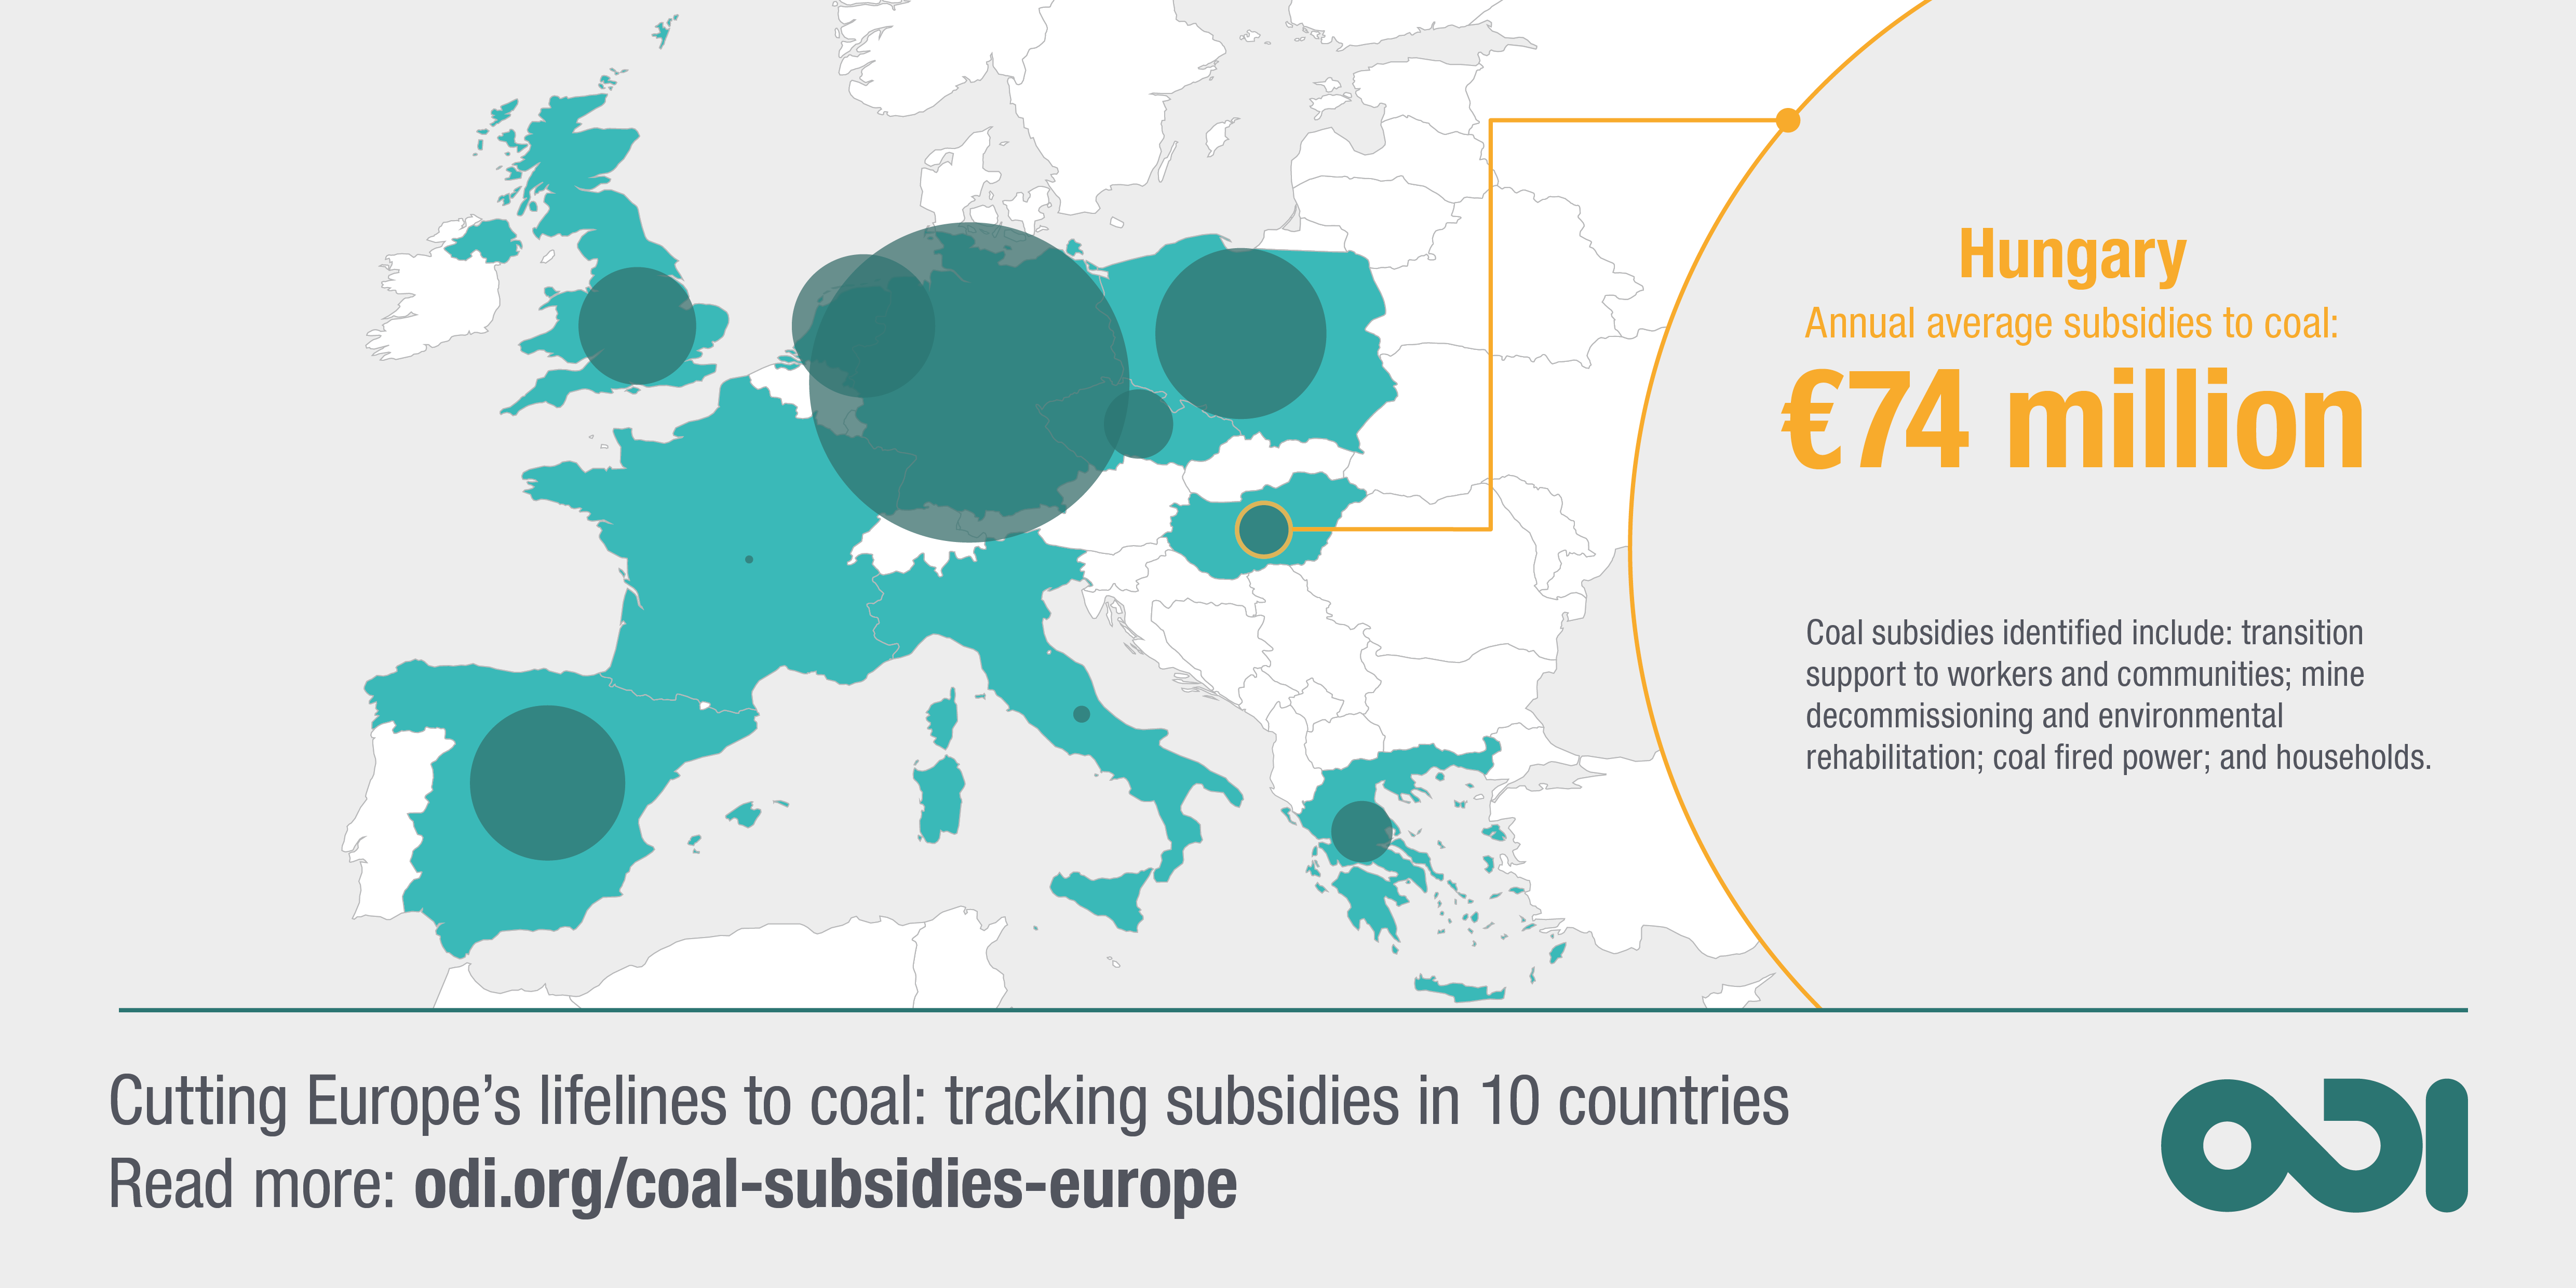 Infographic: Coal subsidies in Hungary